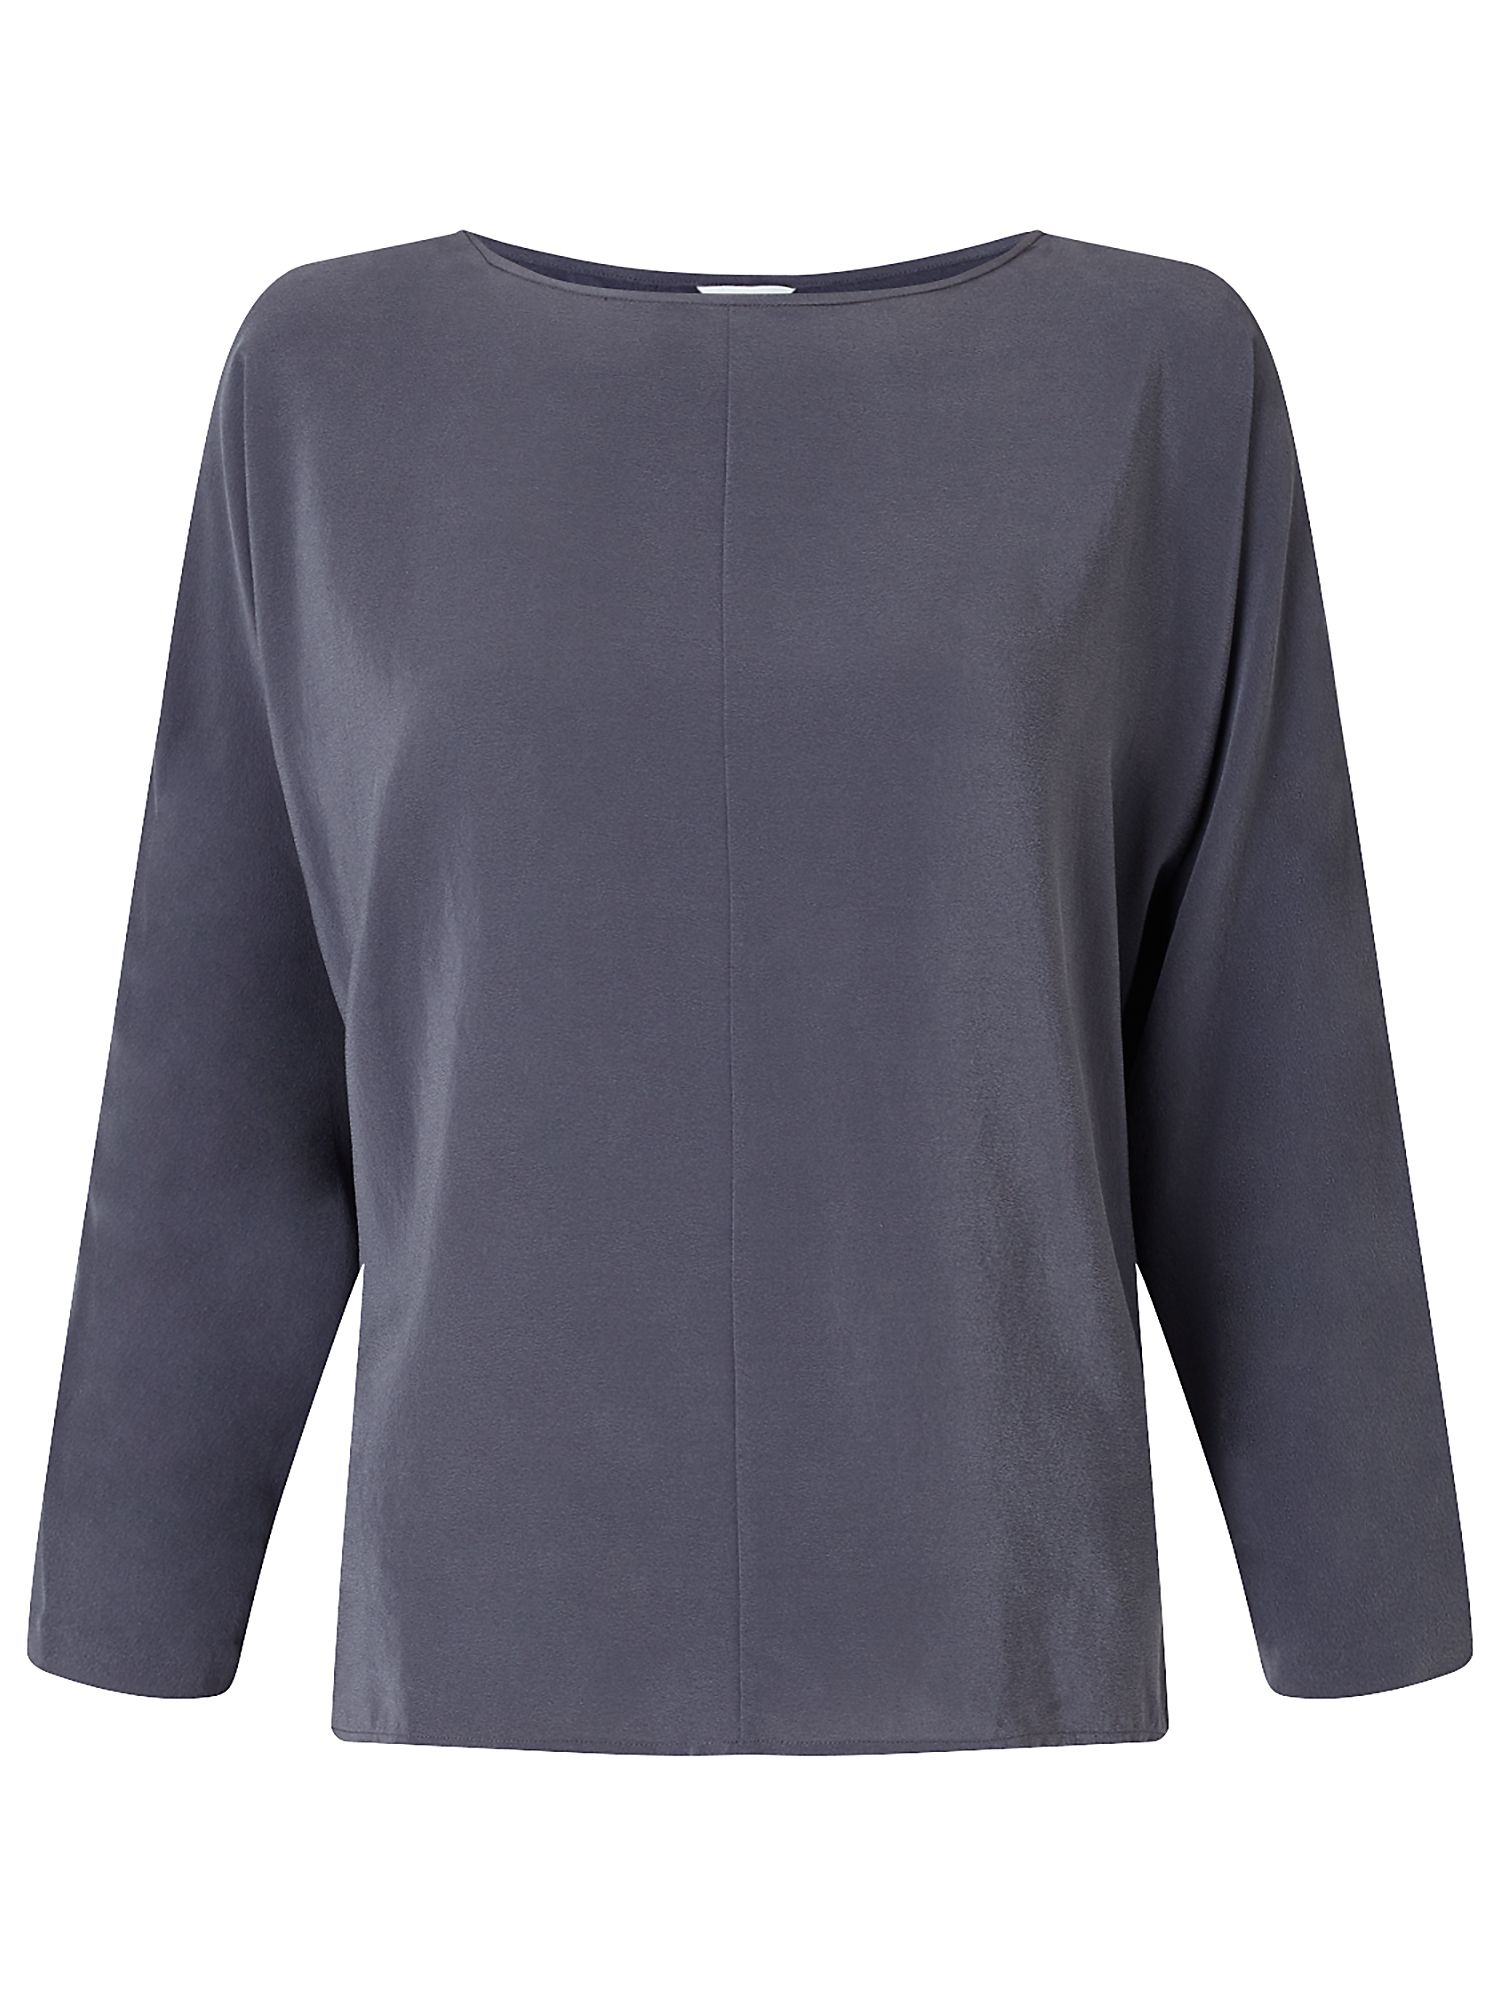 Jigsaw Silk Front Dolman Sleeve Top, Grey